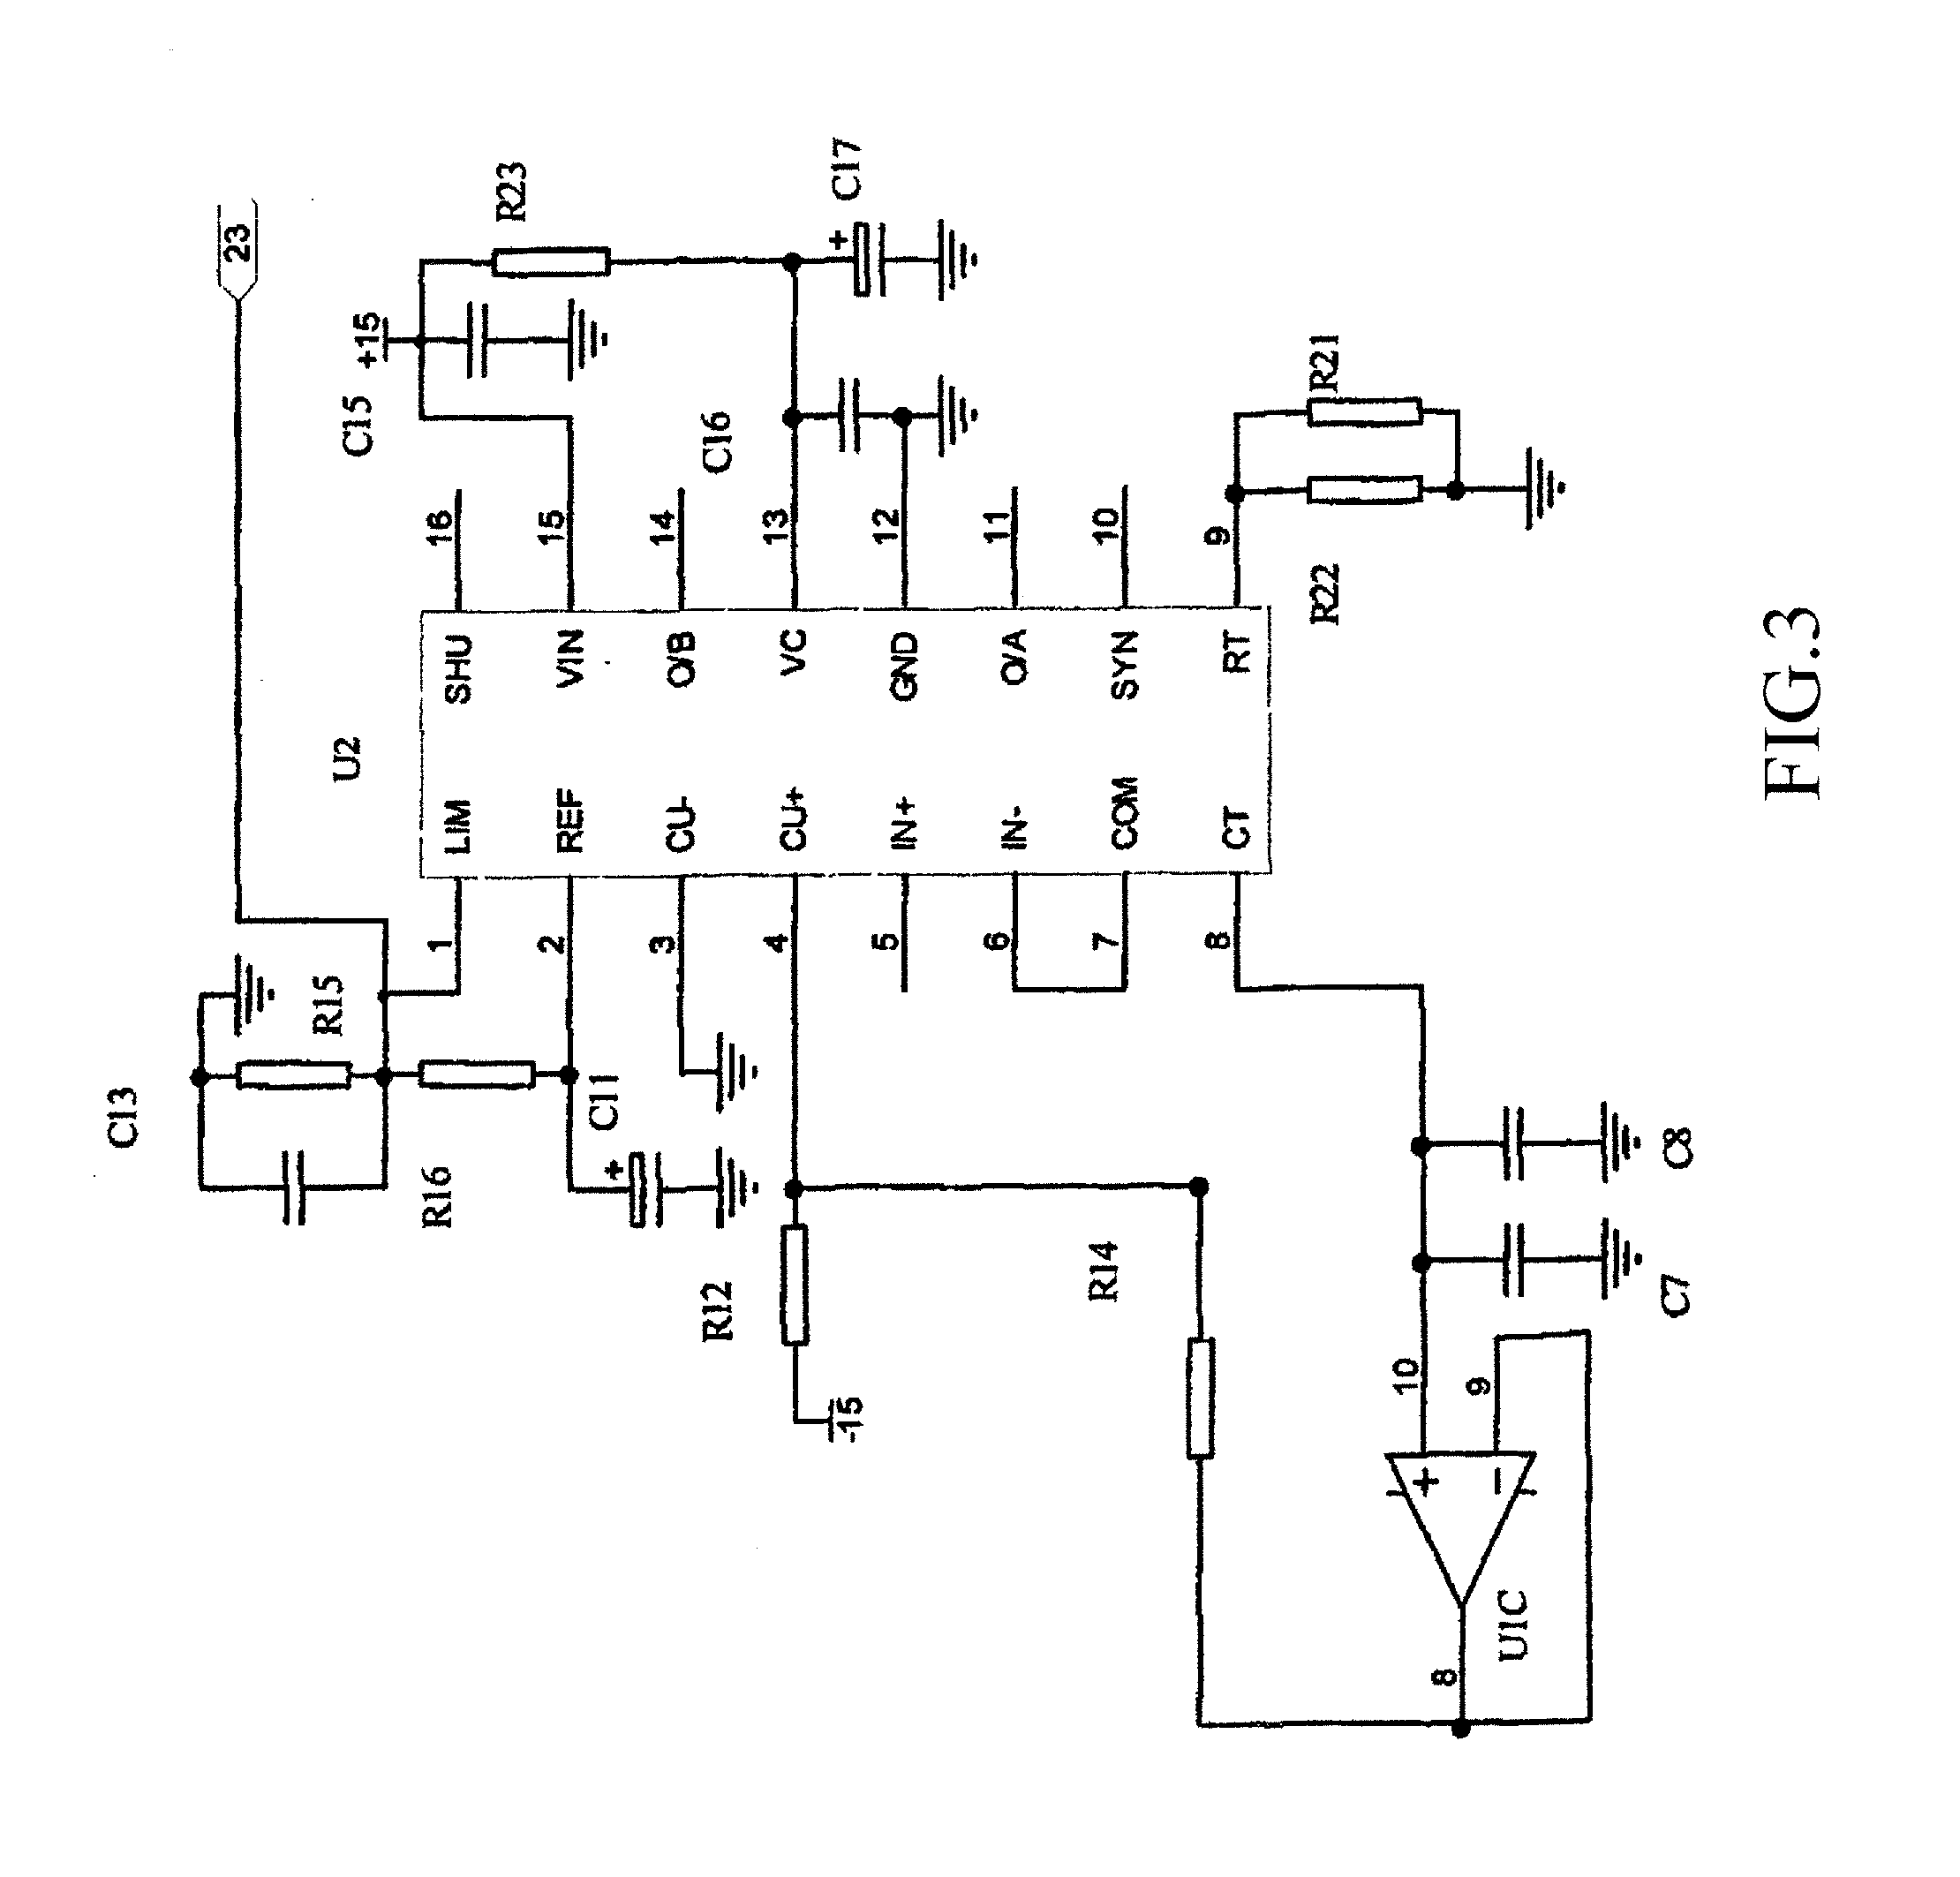 Welder Inverter Circuit Diagram